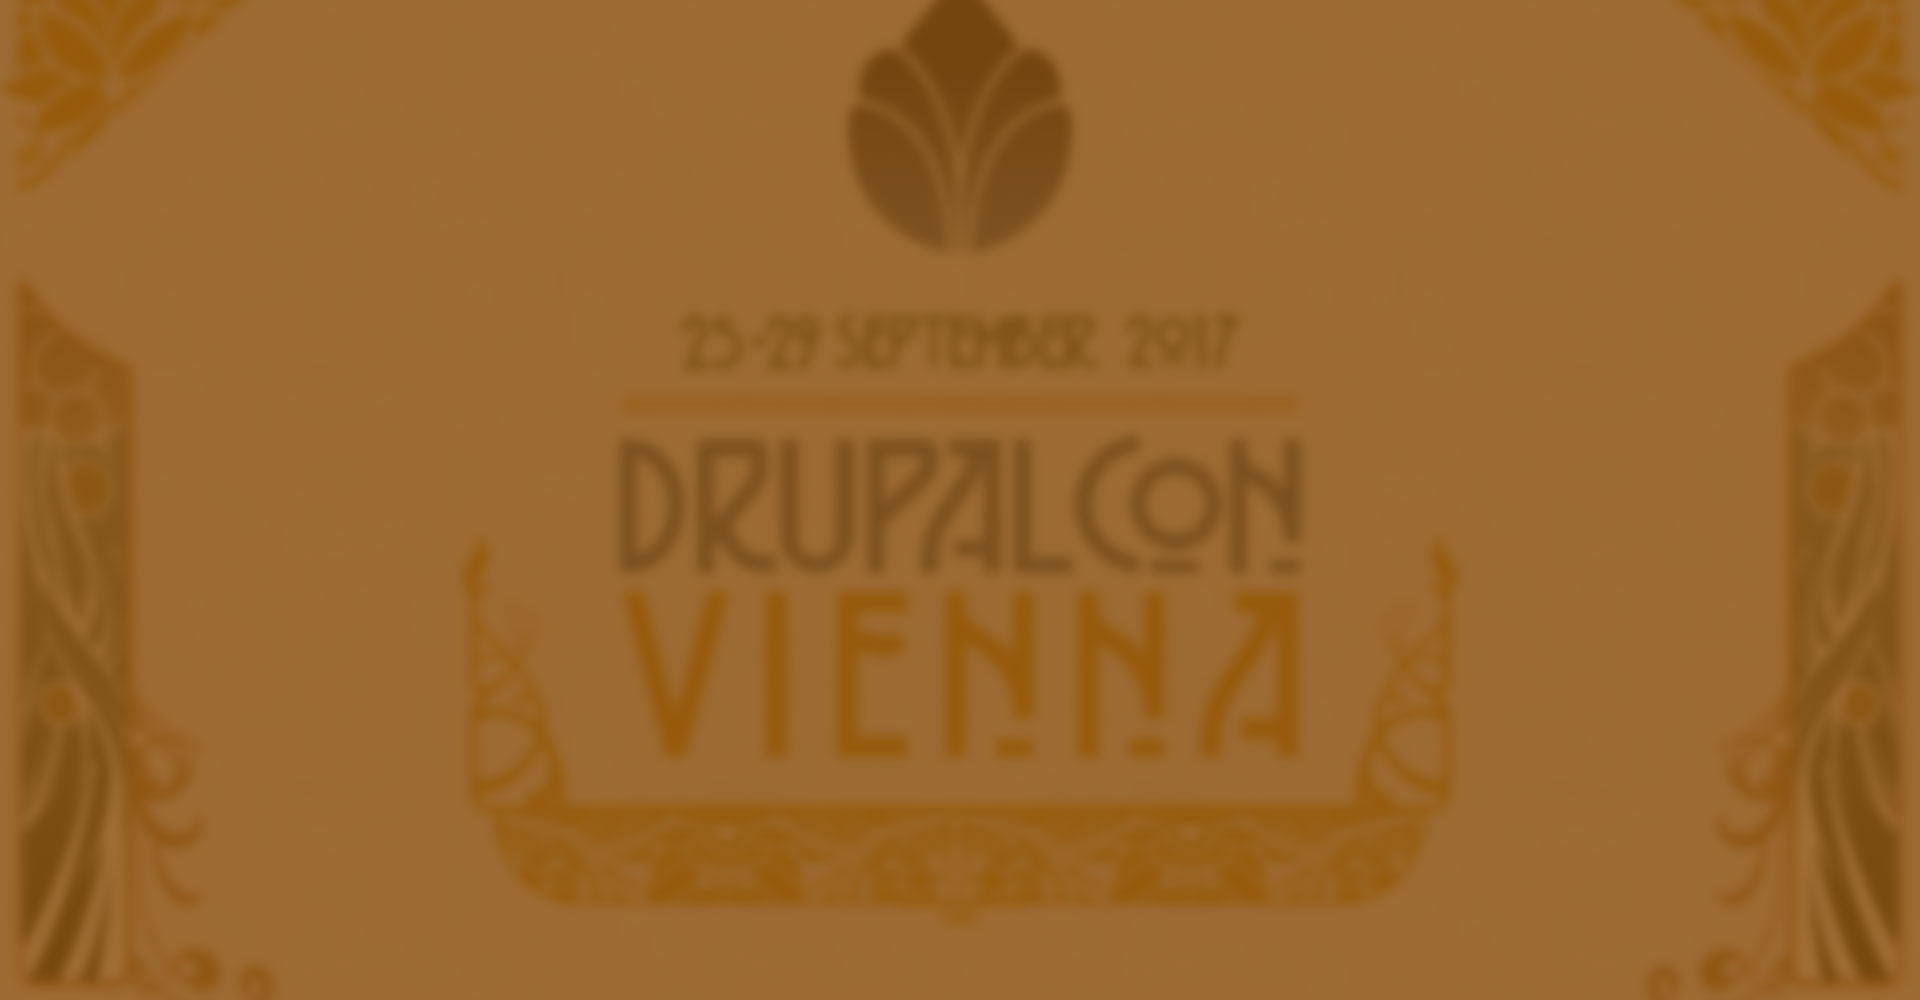 DRUPALCON VIENNA: Highlights from Day 2